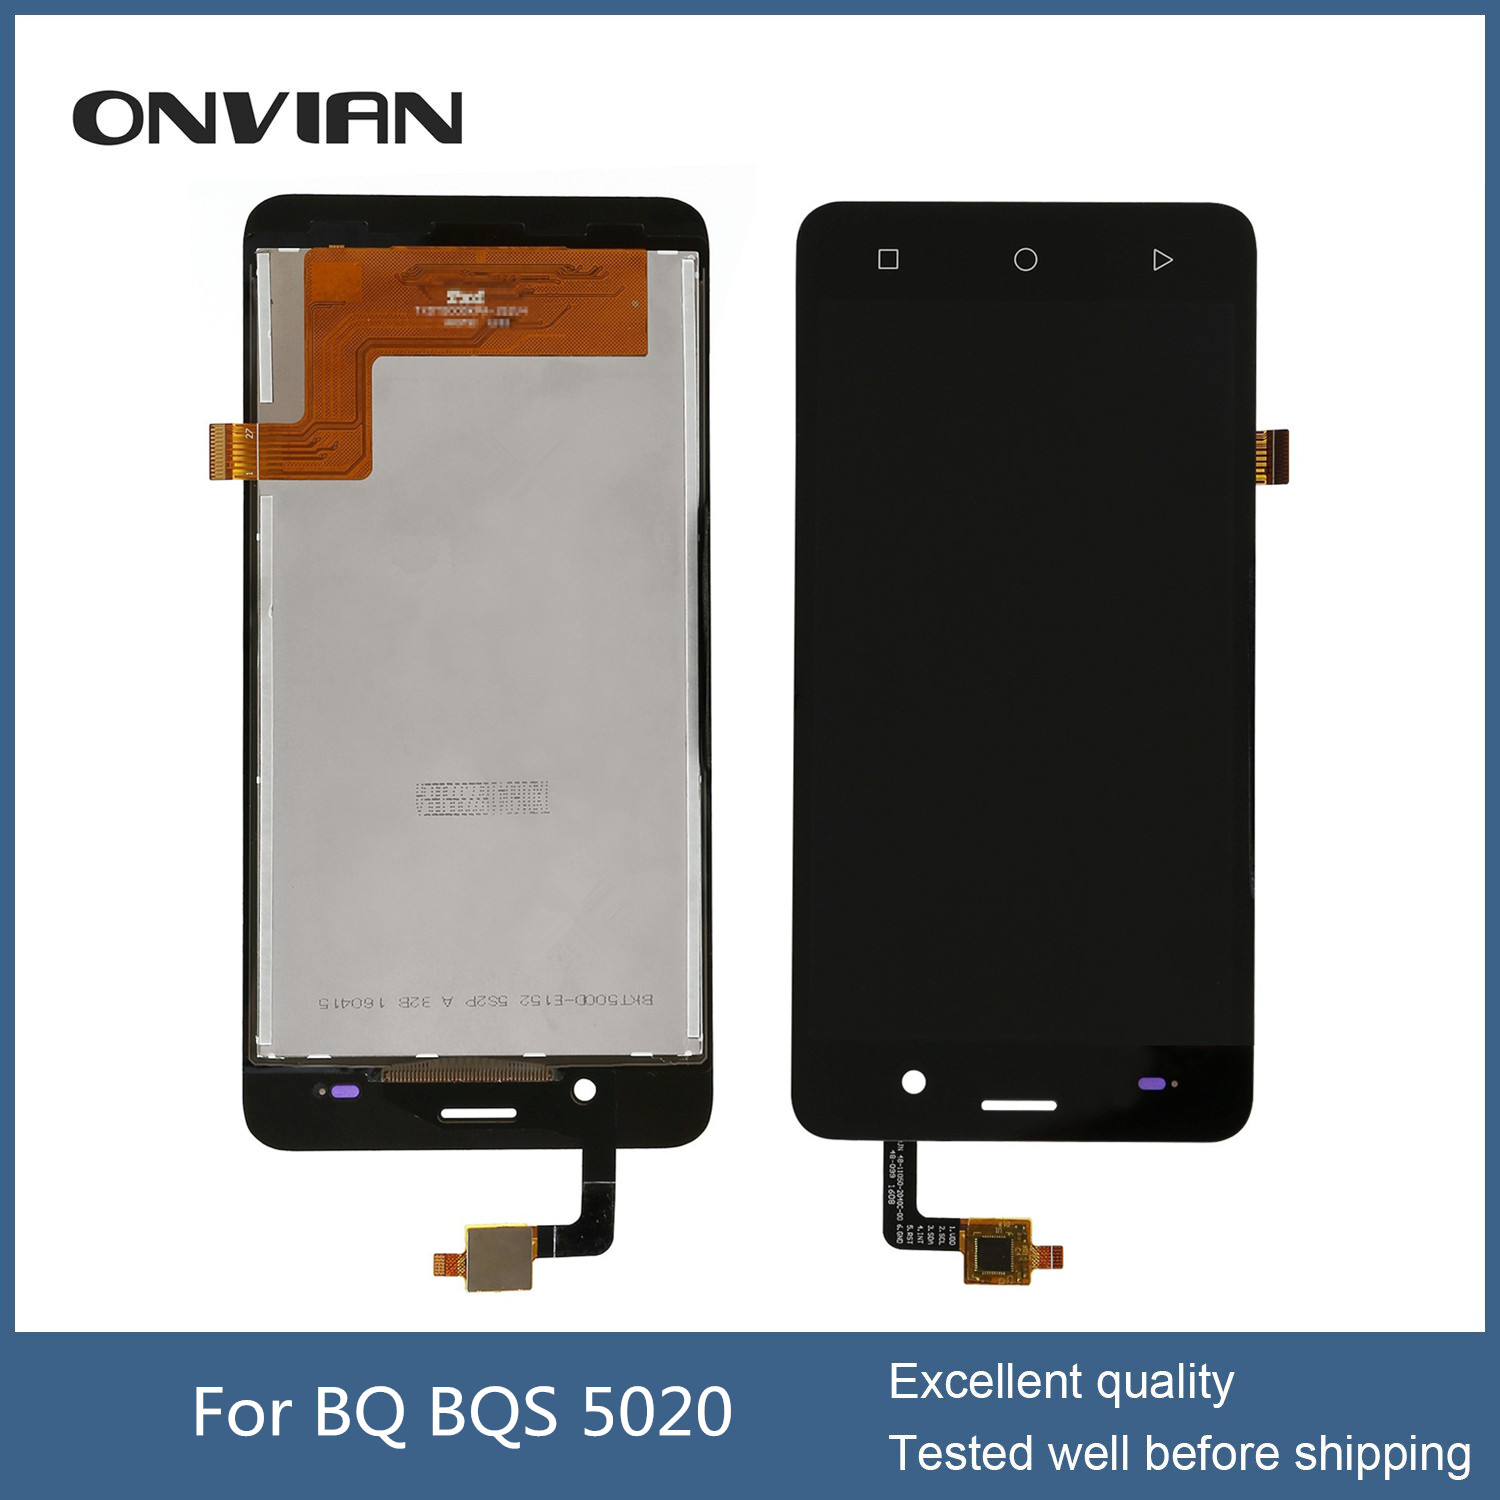 BQ BQS 5020 lcd display dititizer with Capacitive Touch screen Digitizer front glass replacement for BQS-5020 module